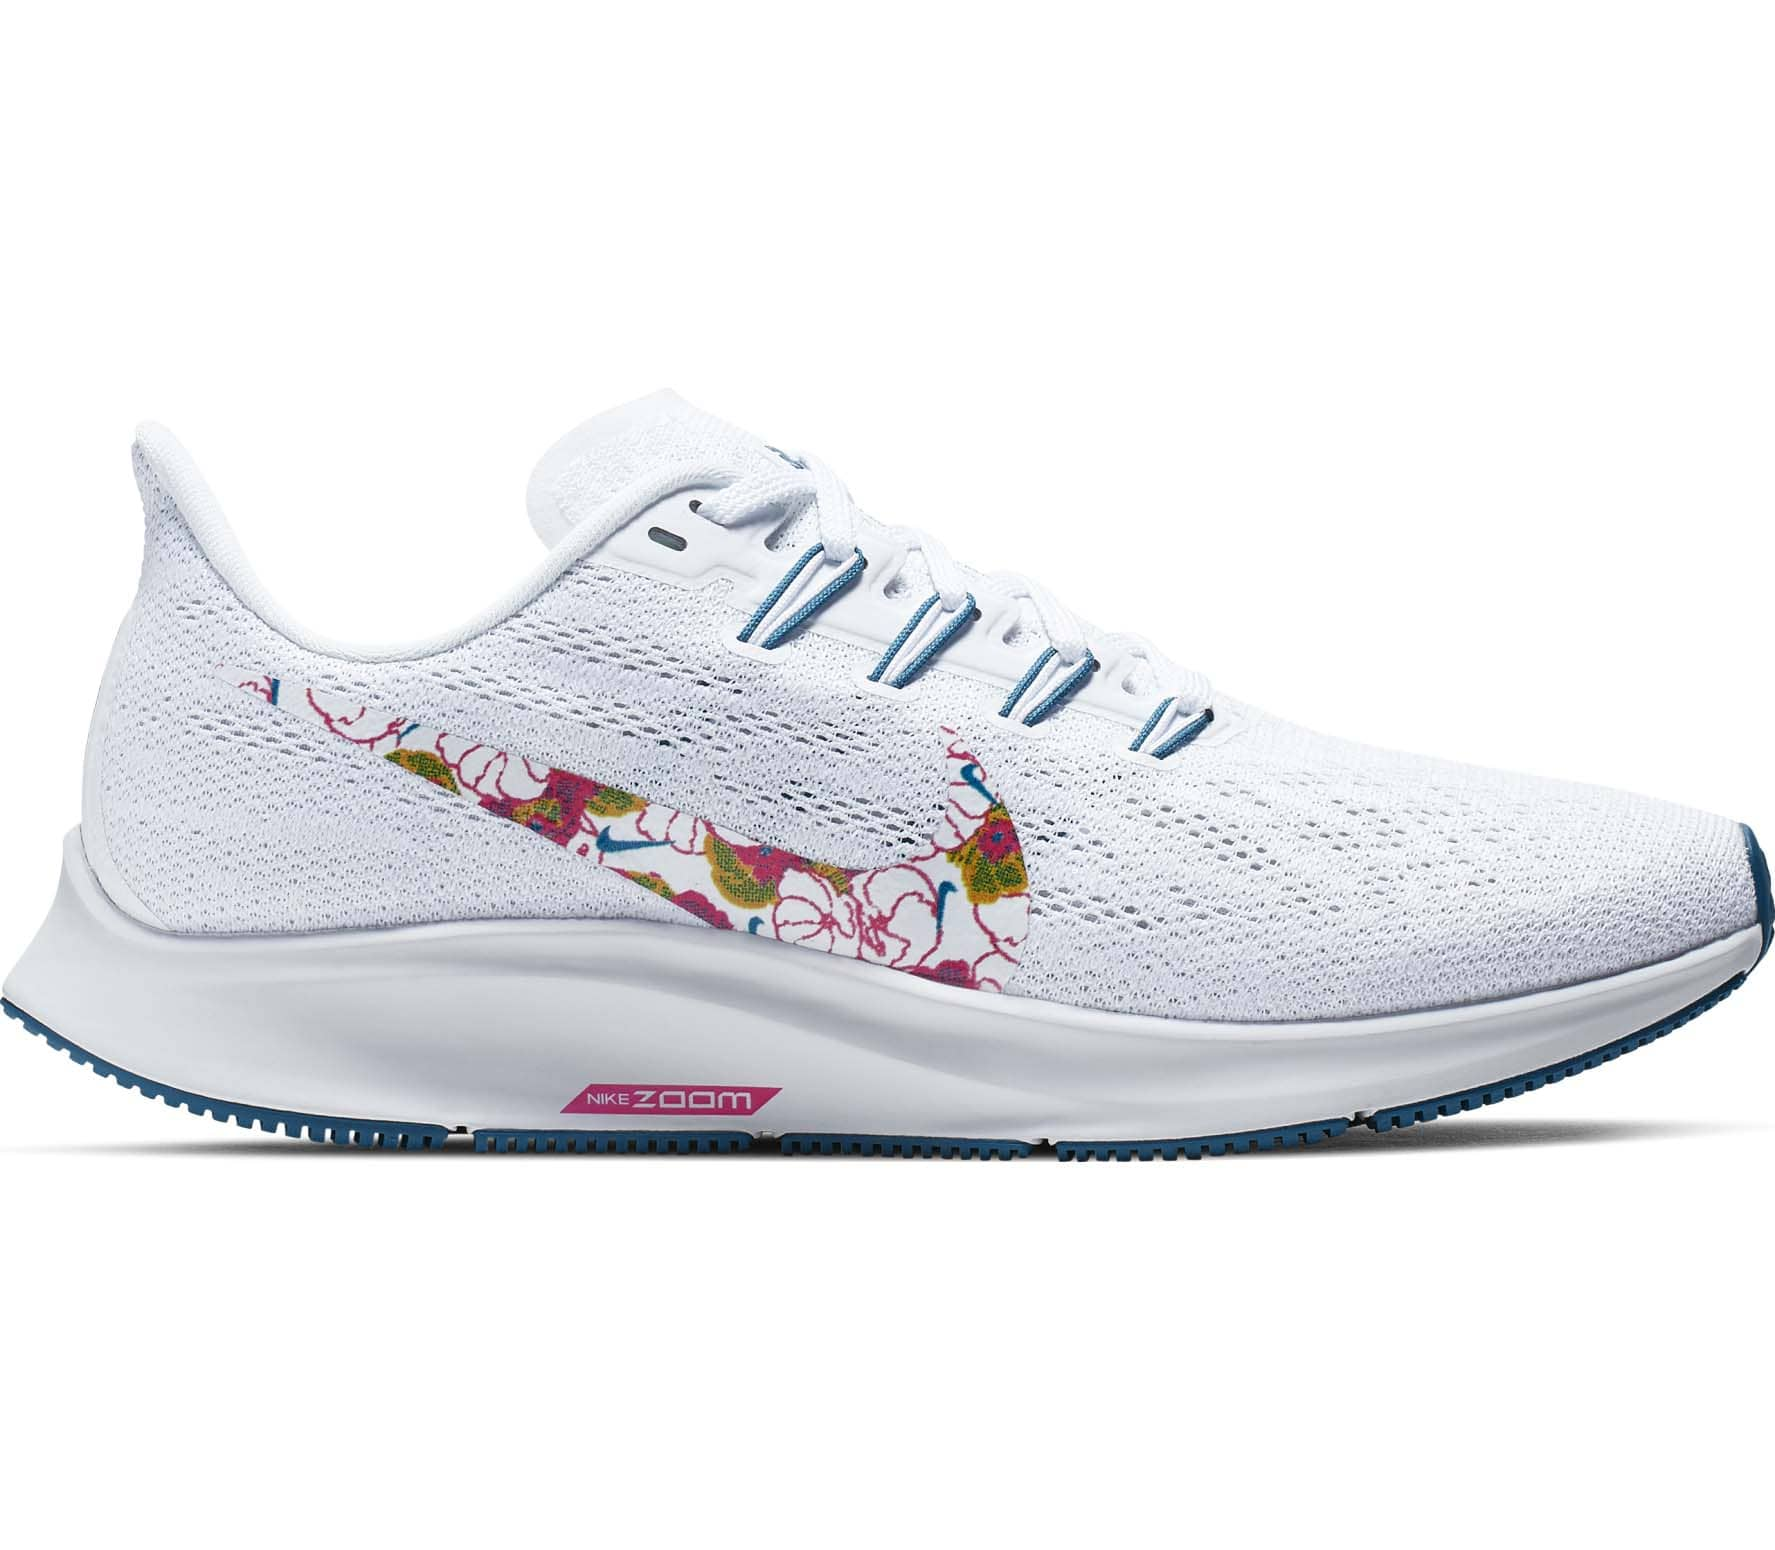 Nike Air Zoom Pegasus 36 women's running shoes Femmes